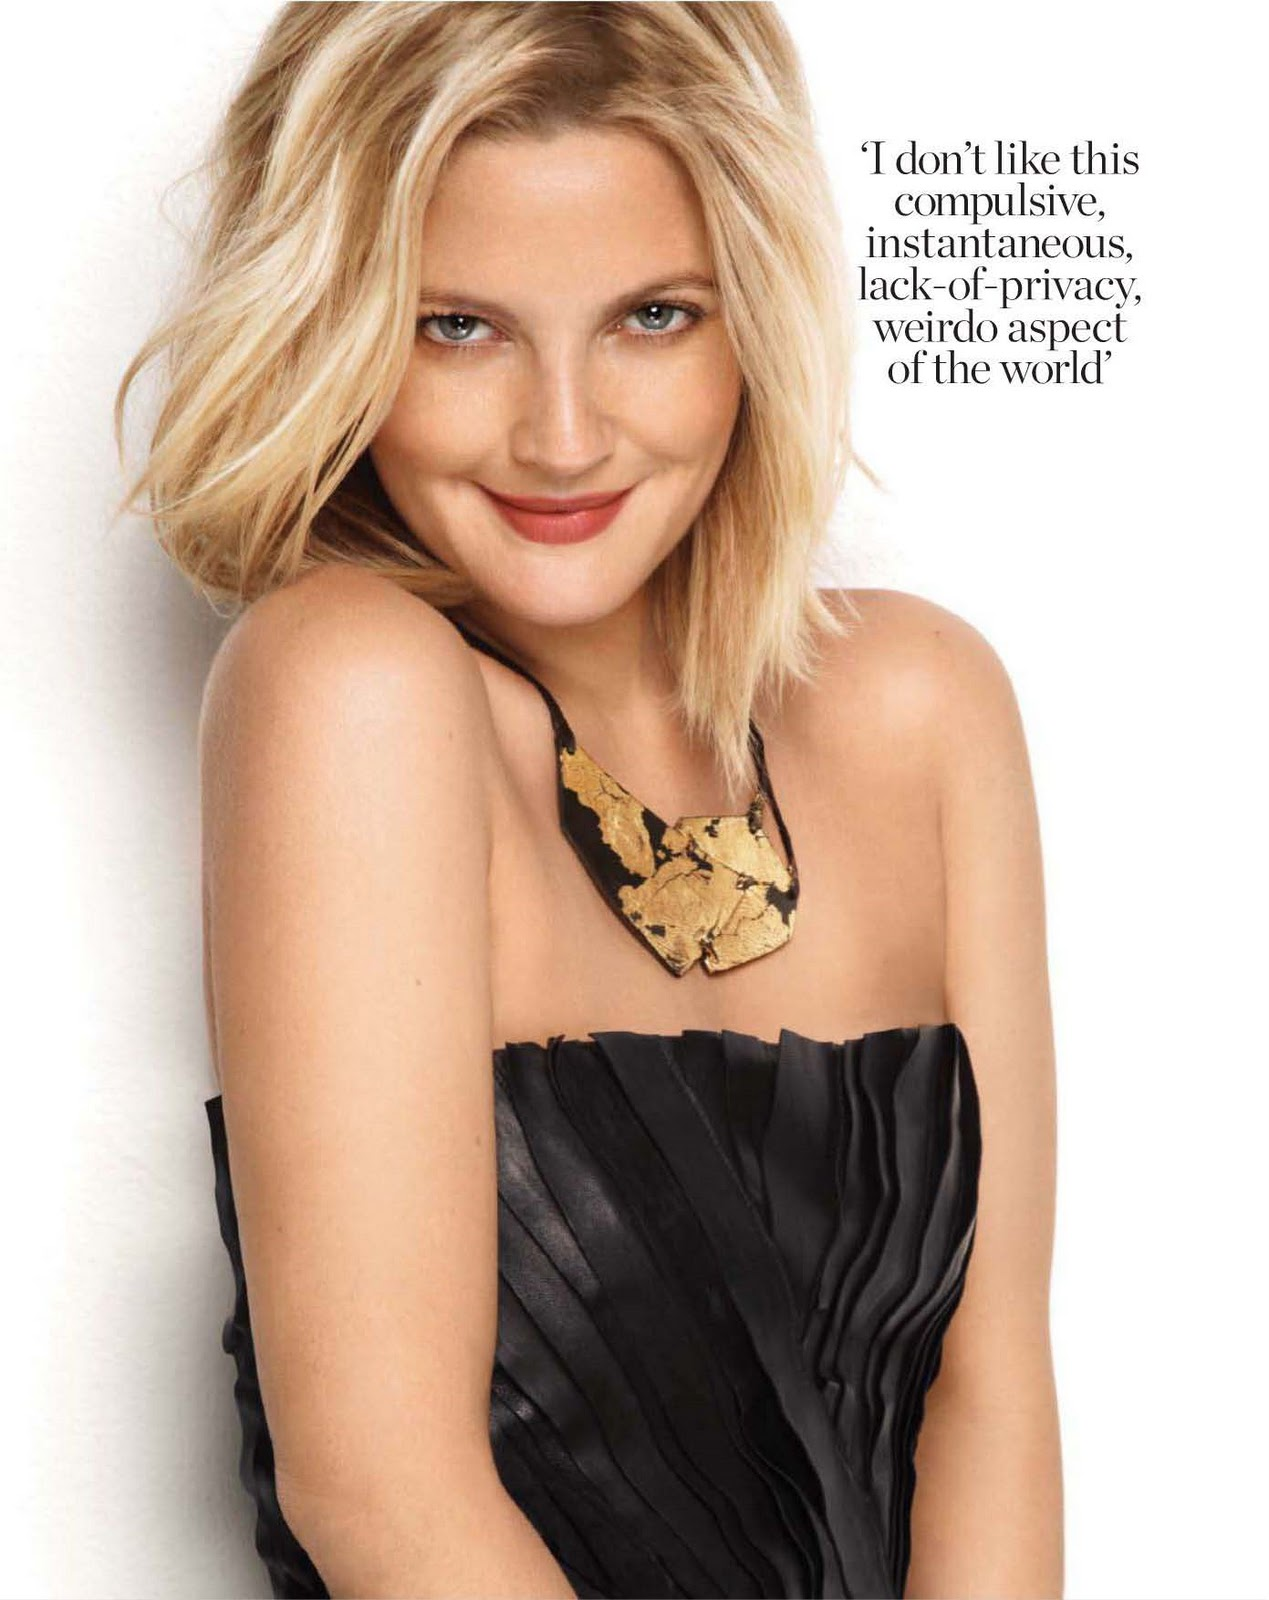 Drew Barrymore @ Marie Claire - UK, September 2010 - Fashion Mags ... Drew Barrymore